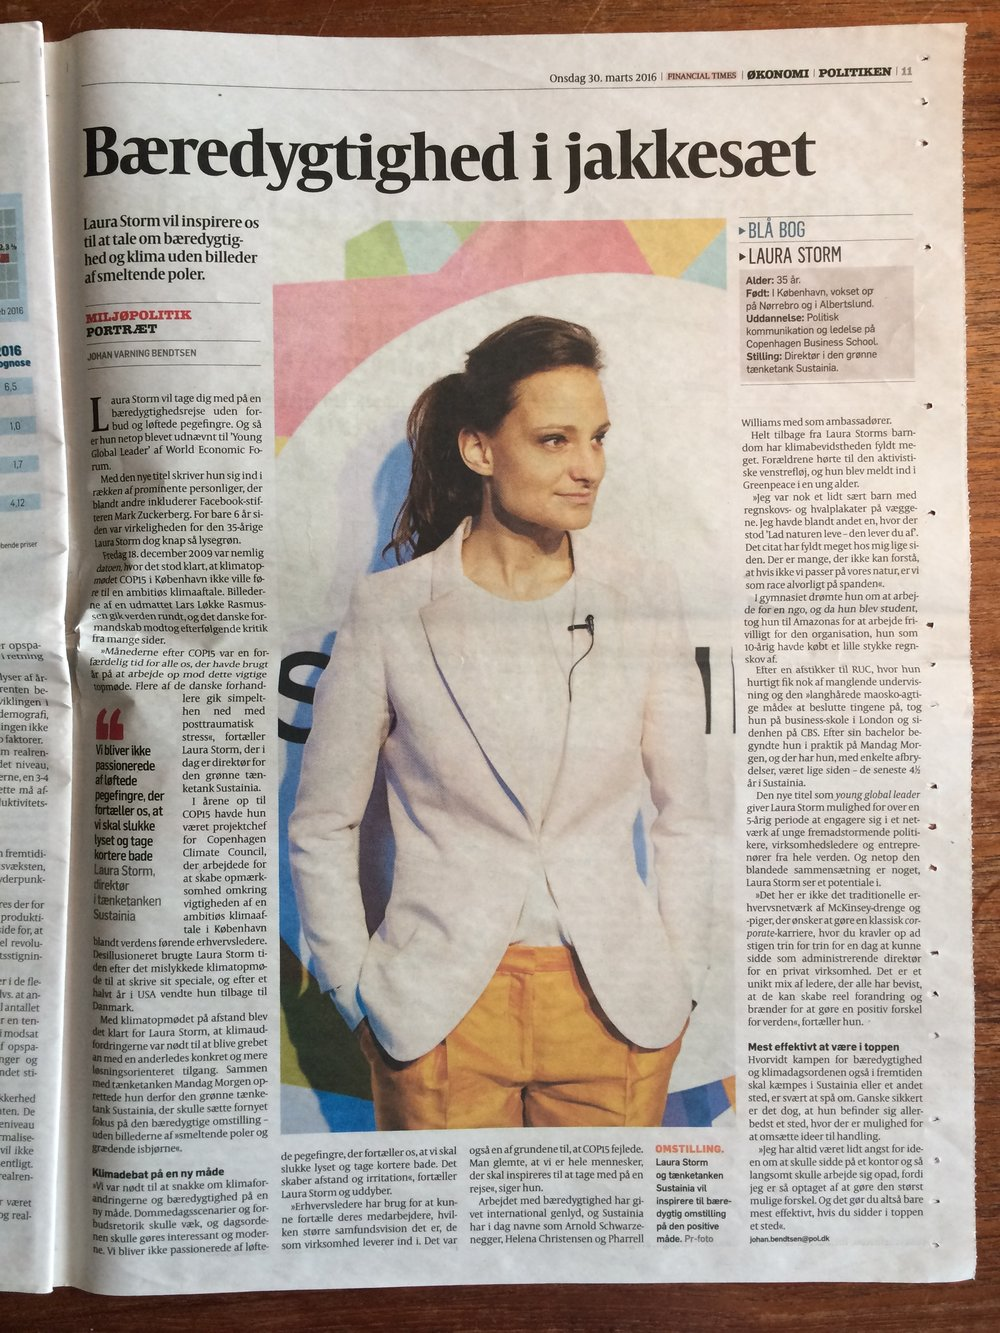 Portrait in Danish Newspaper POLITIKEN, March 30, 2016